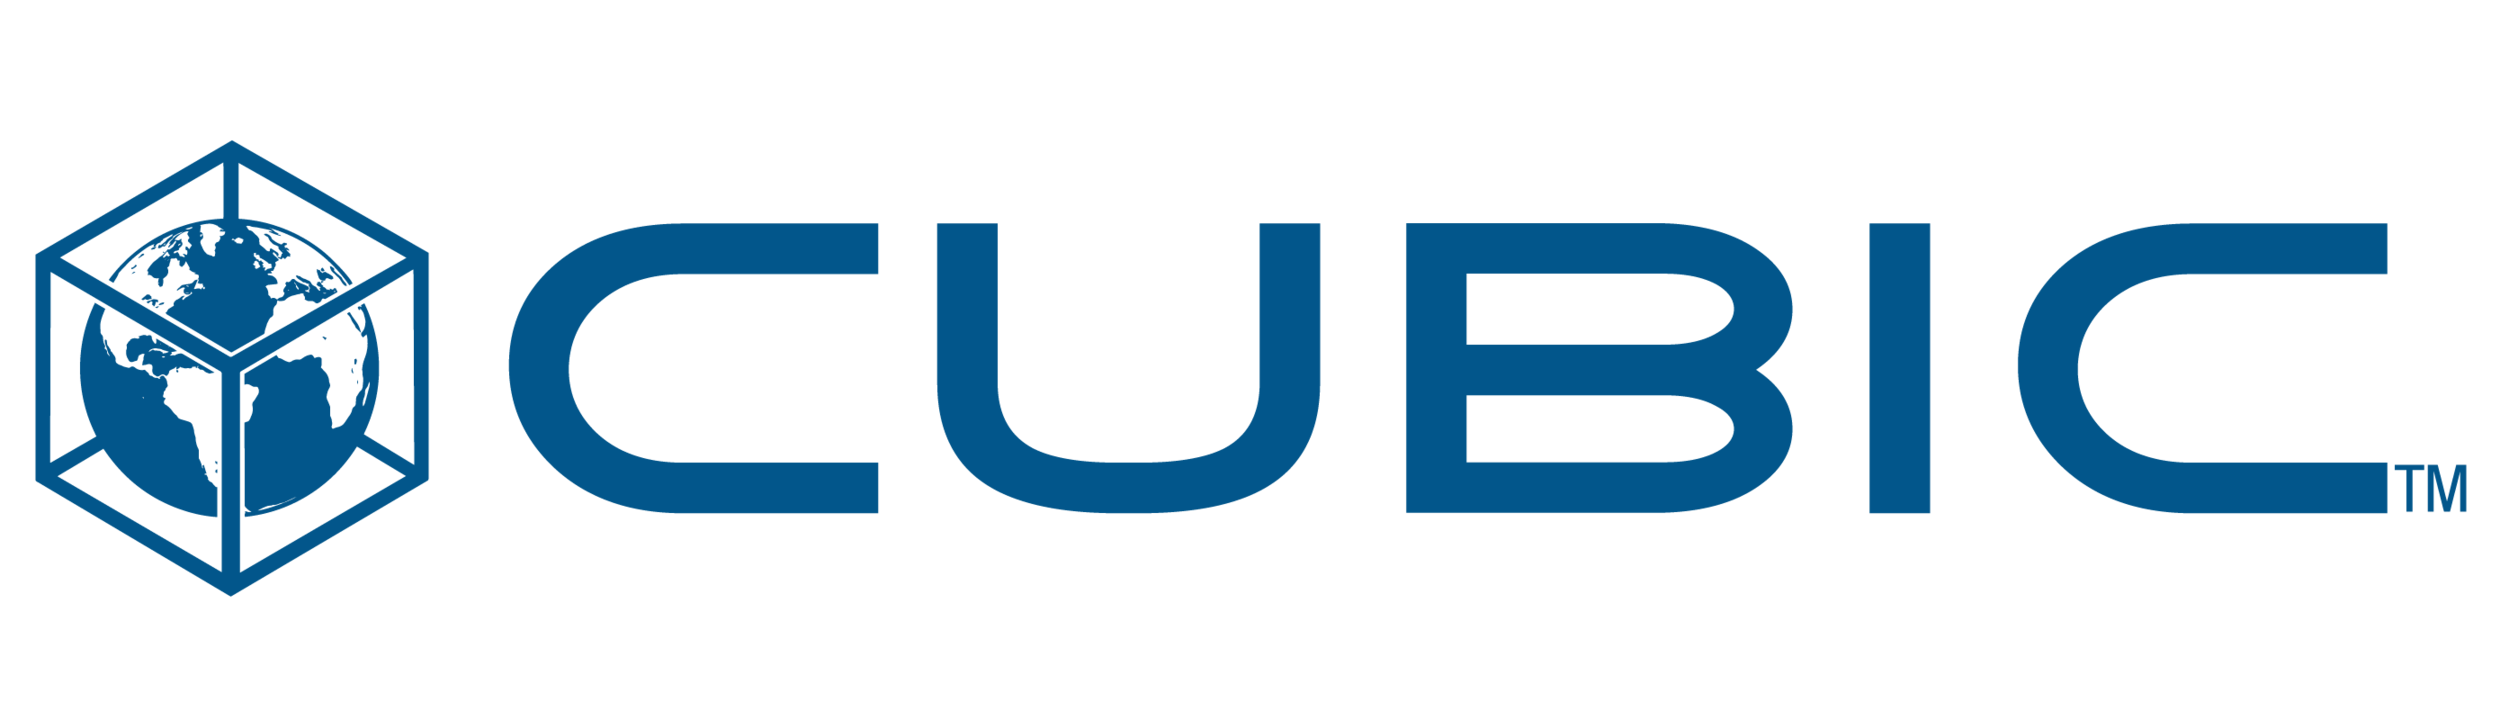 cubic-logo-sized.png